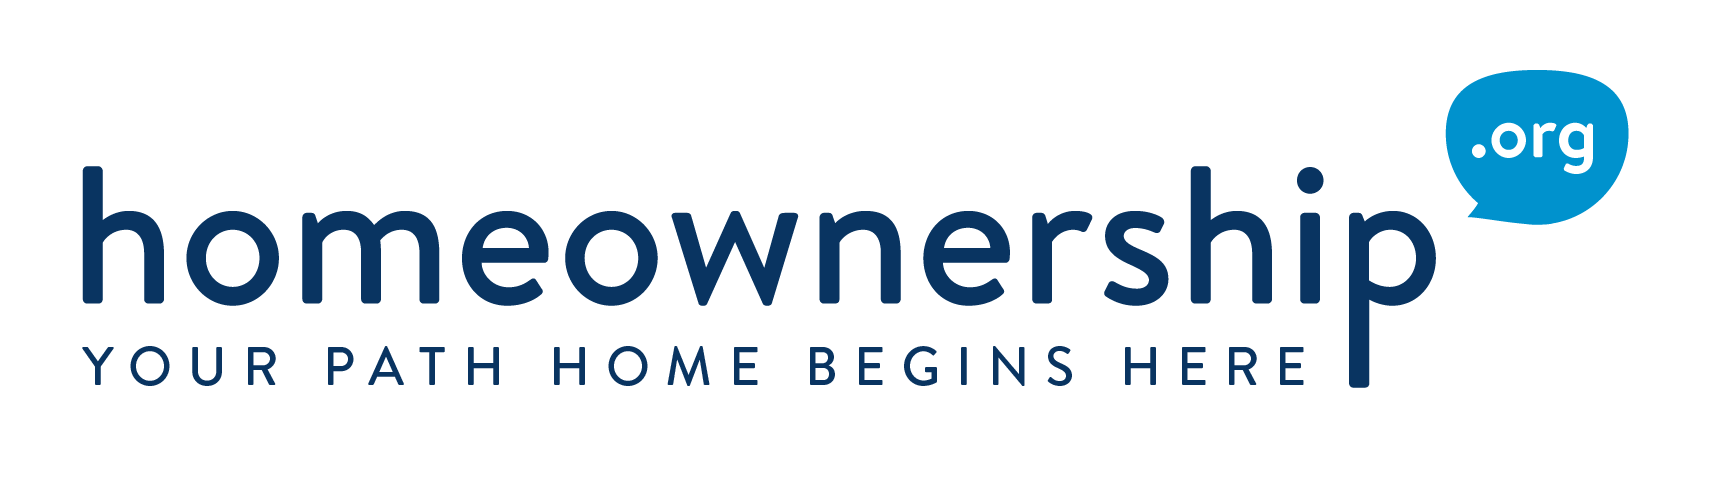 HomeOwnership.org